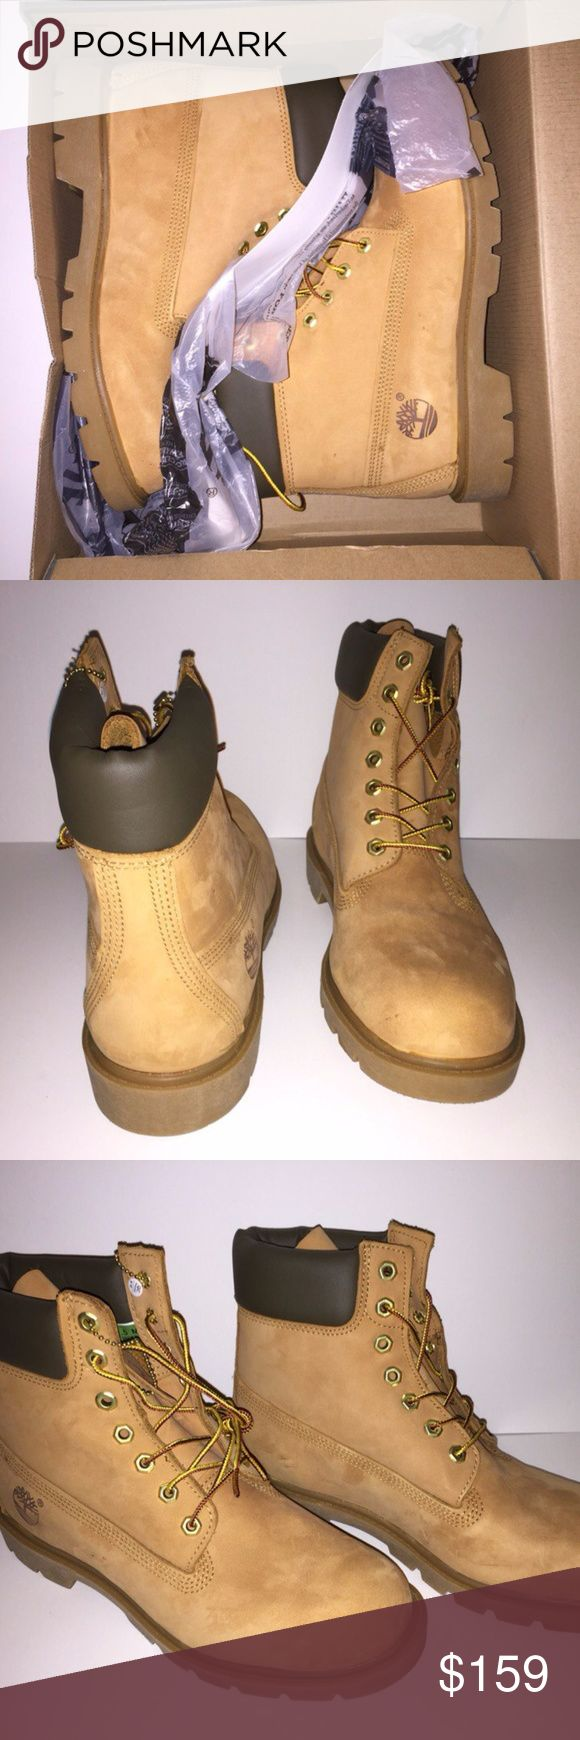 Timberland Boots Brand new Timberland Boots. The shoes are guaranteed 100% authentic, or your money back! I ship every day the post office is open. The box is included. Feel free to ask any additional questions. Timberland Shoes Boots